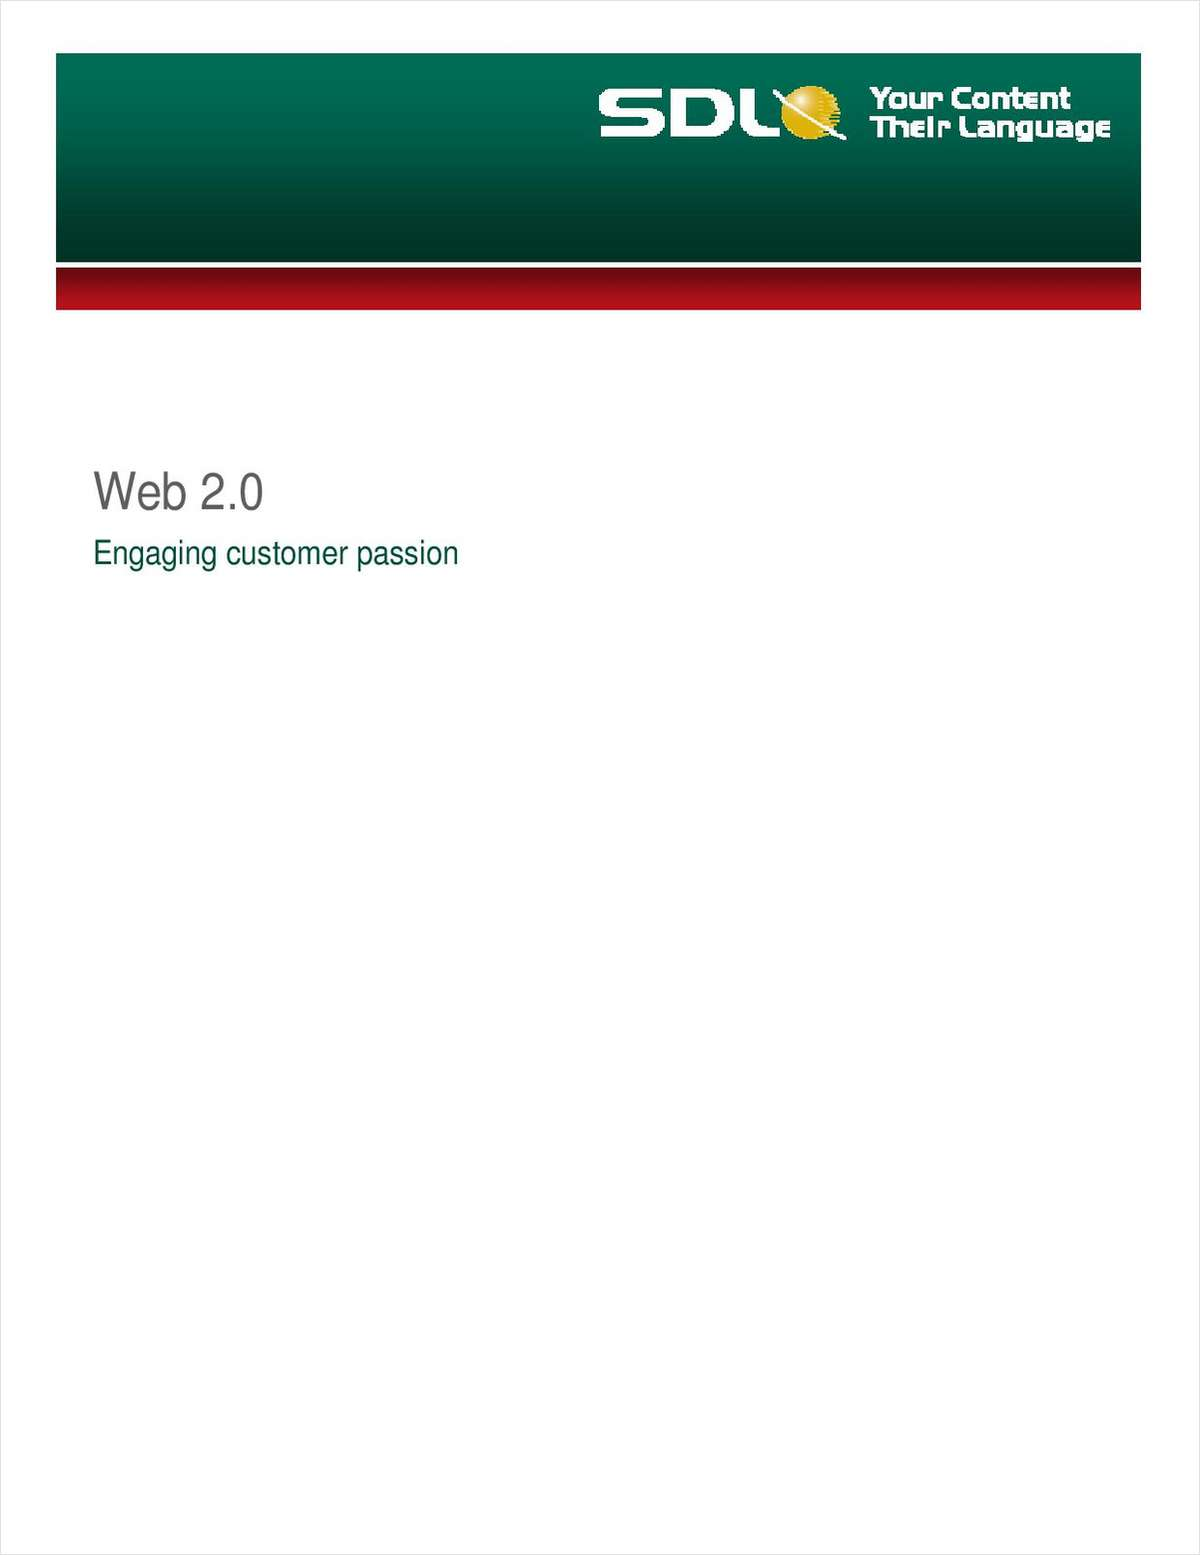 Web 2.0: Engaging Customer Passion